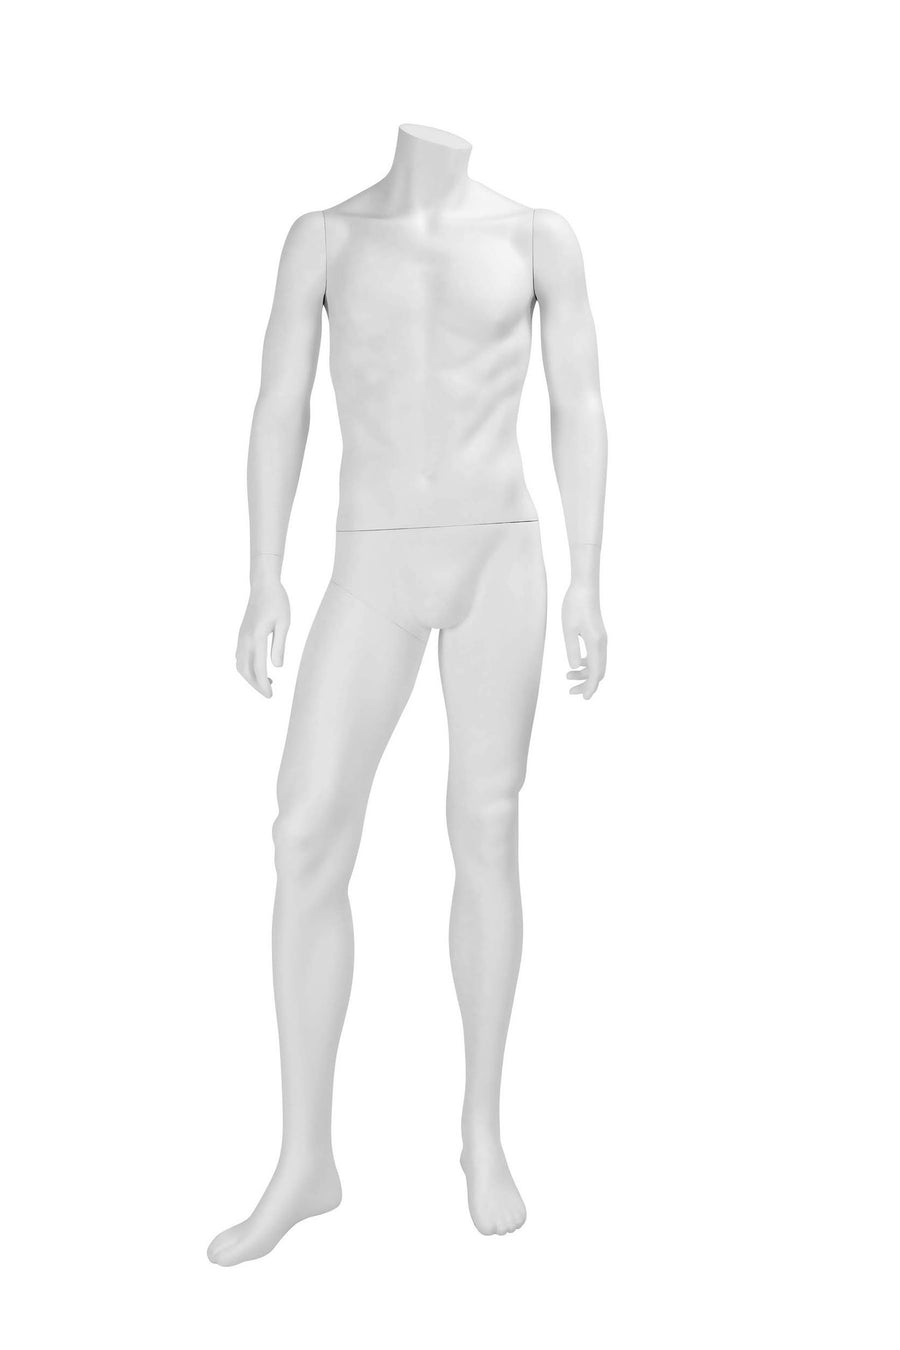 genesis pure white headless male mannequin with arms at sides and right leg stepping forward